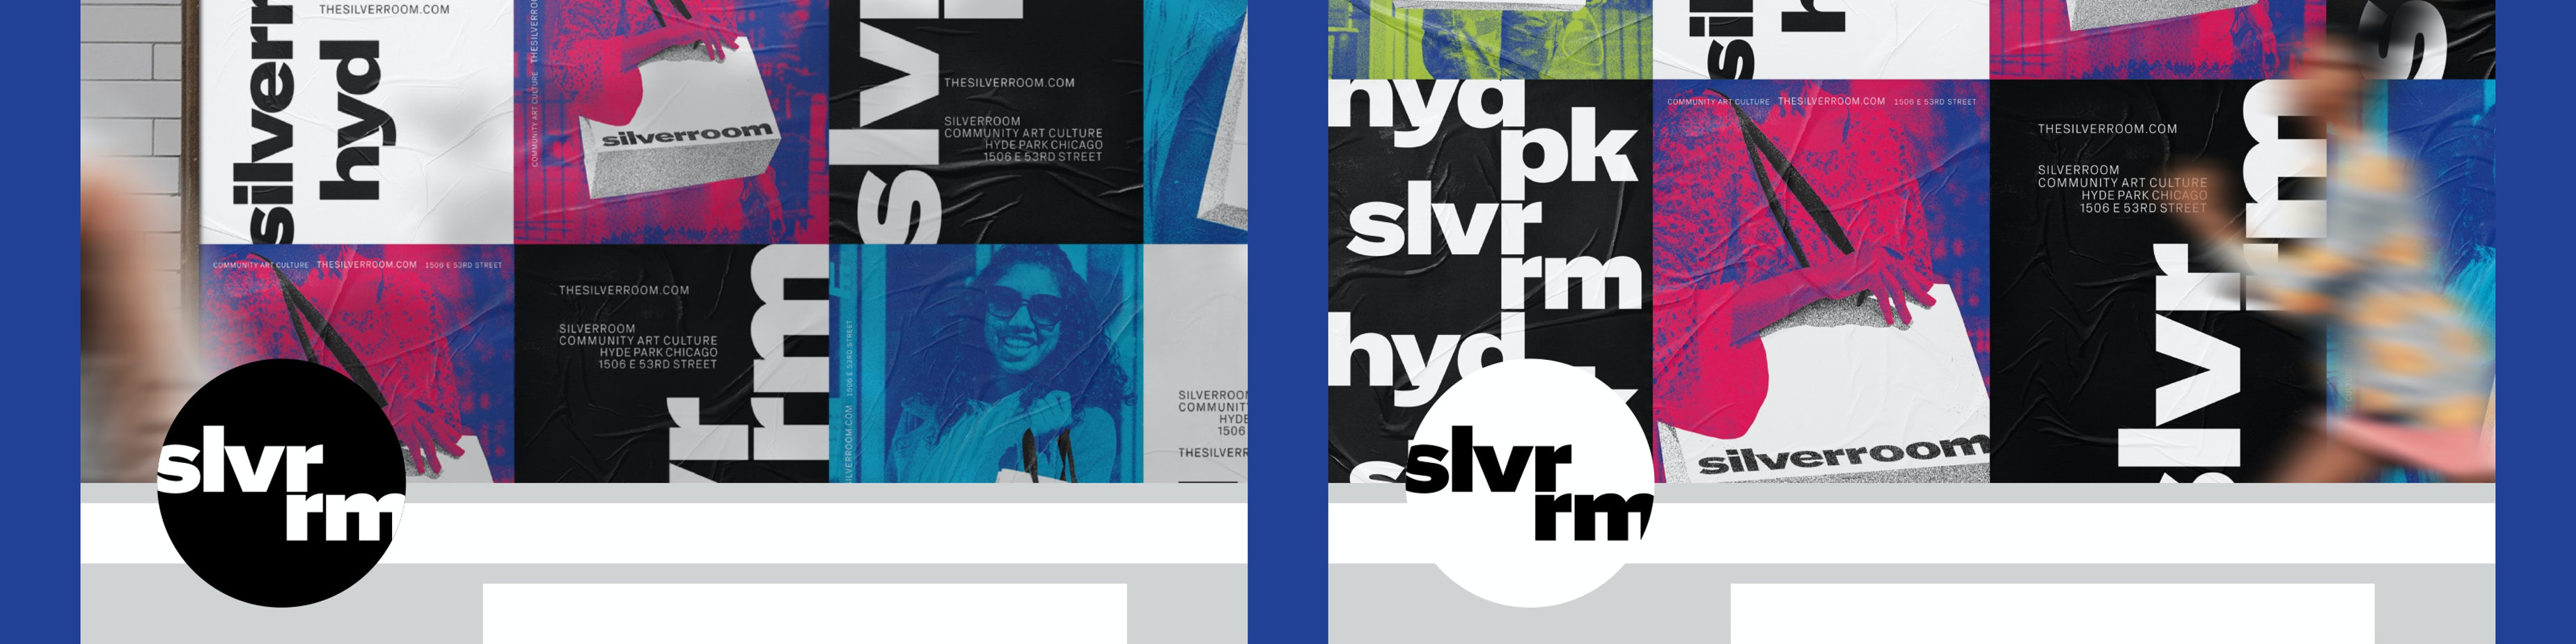 Silverroom Graphic Design Ad Campaign Social Media Header Typography Span 04